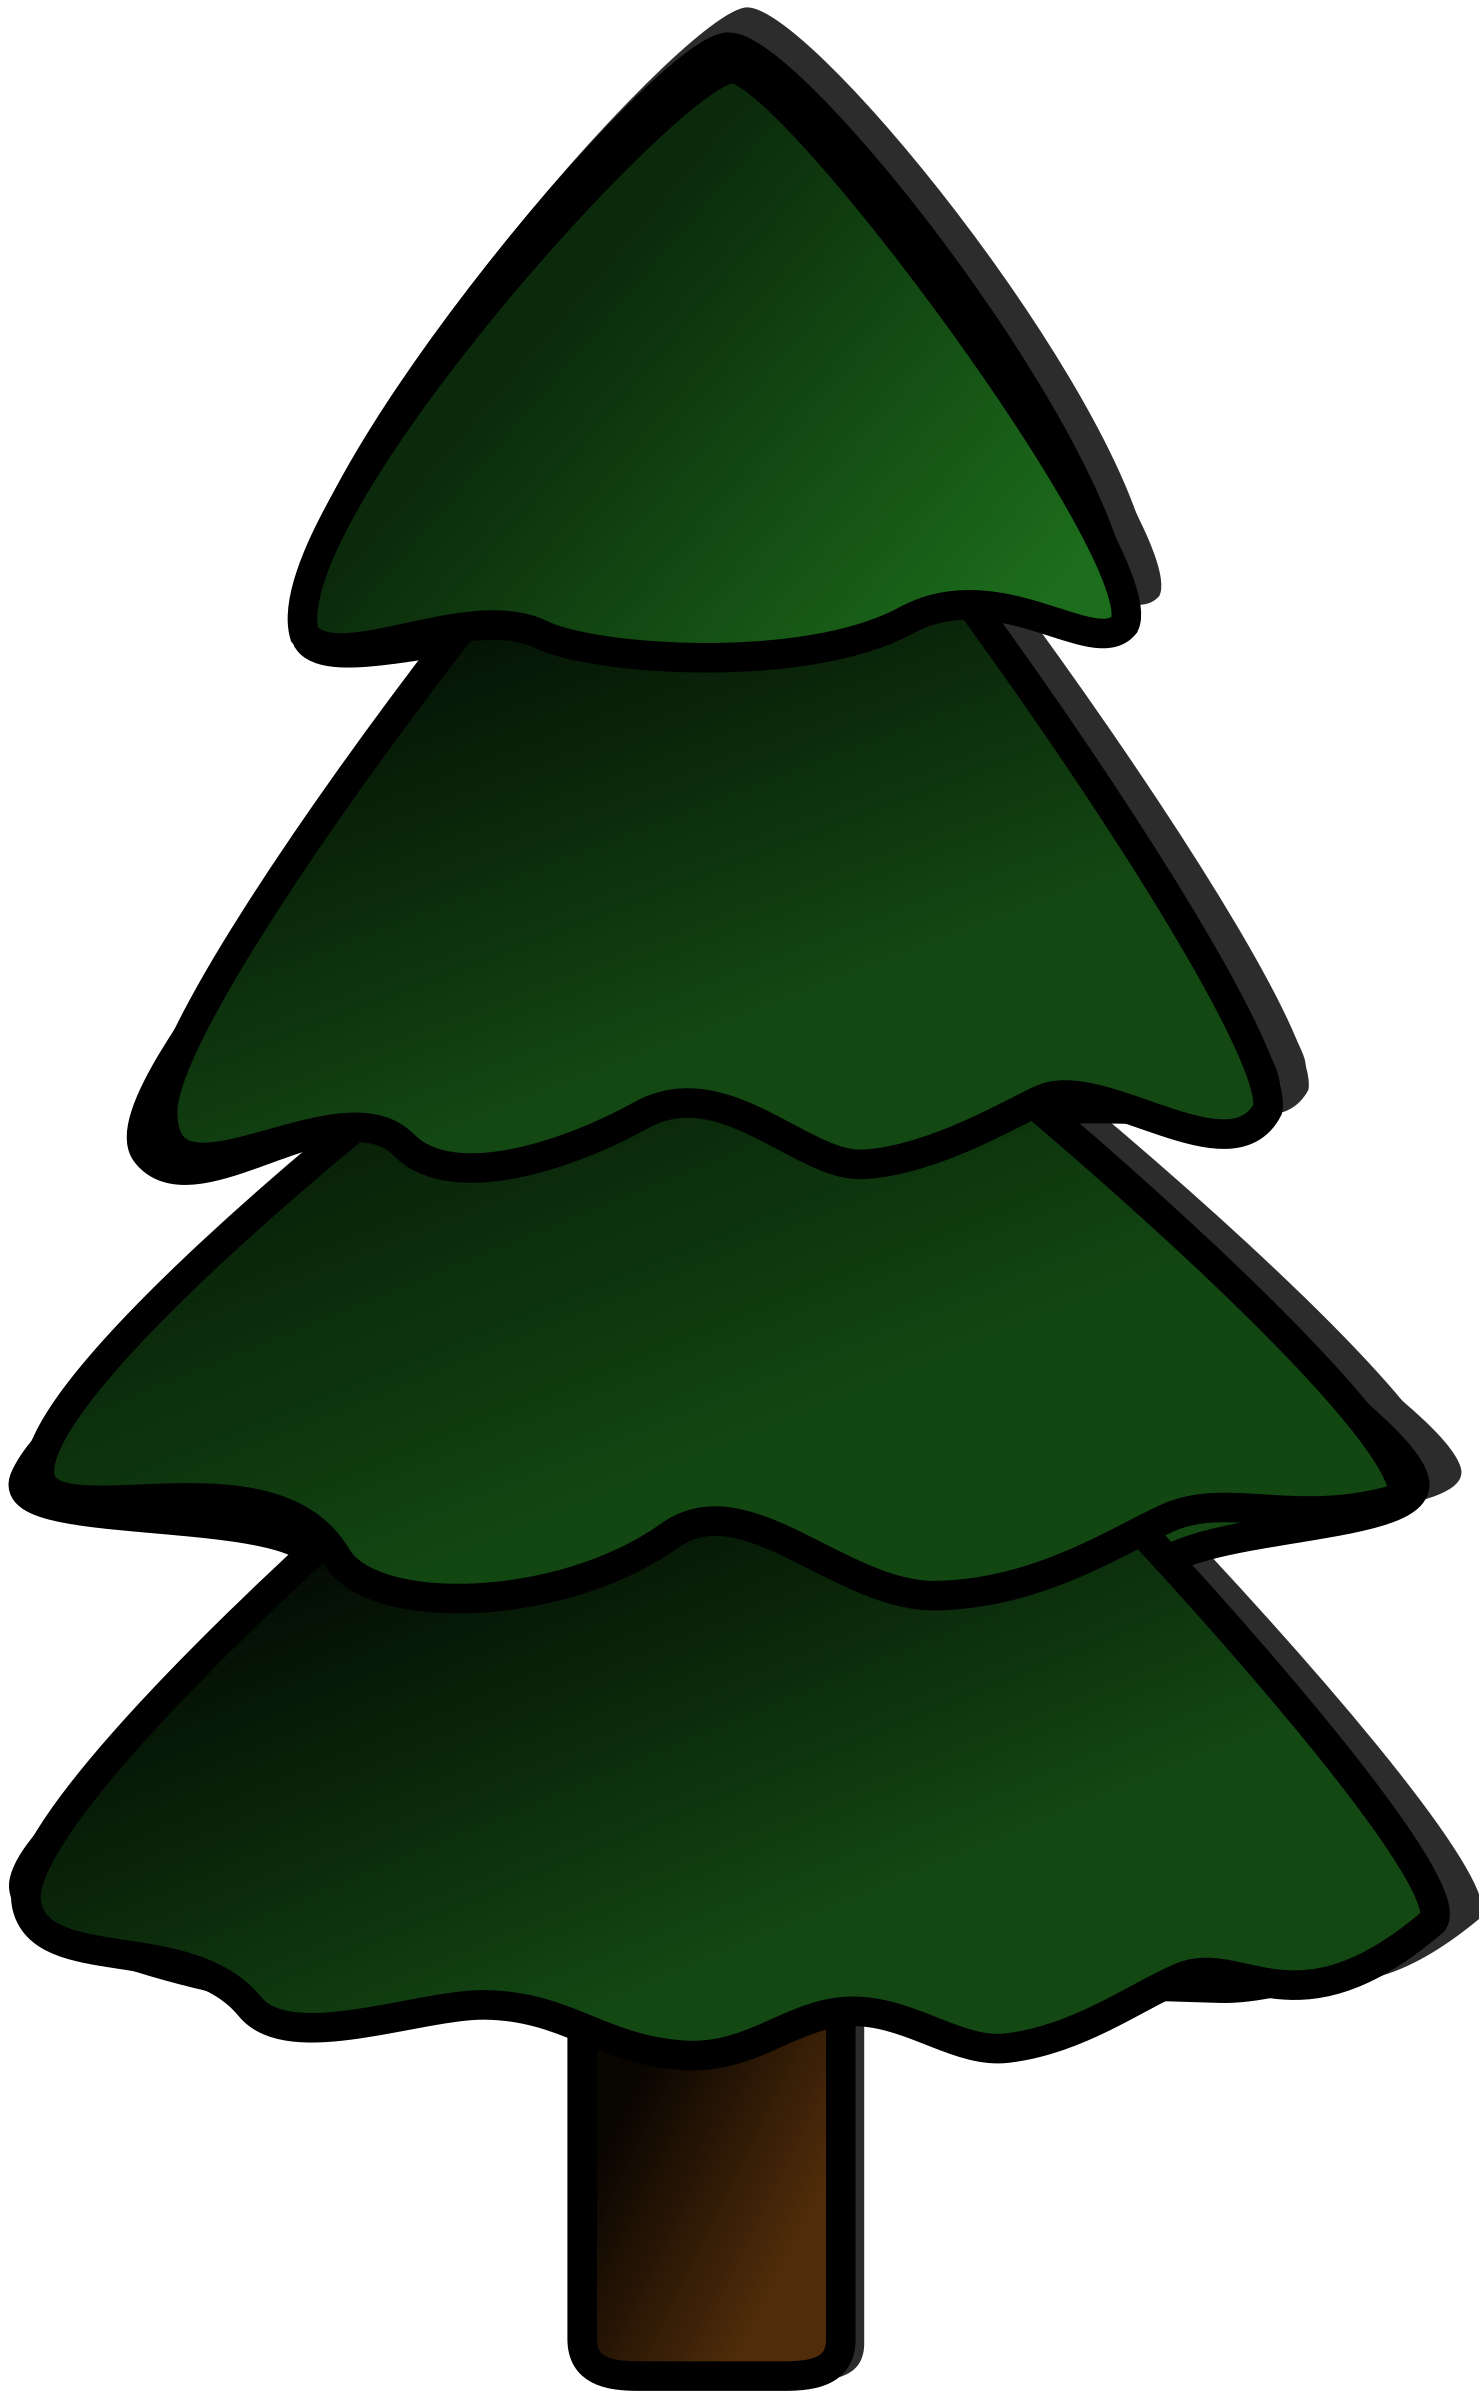 Evergreen tree clipart svg freeuse stock Clipart - Tree svg freeuse stock